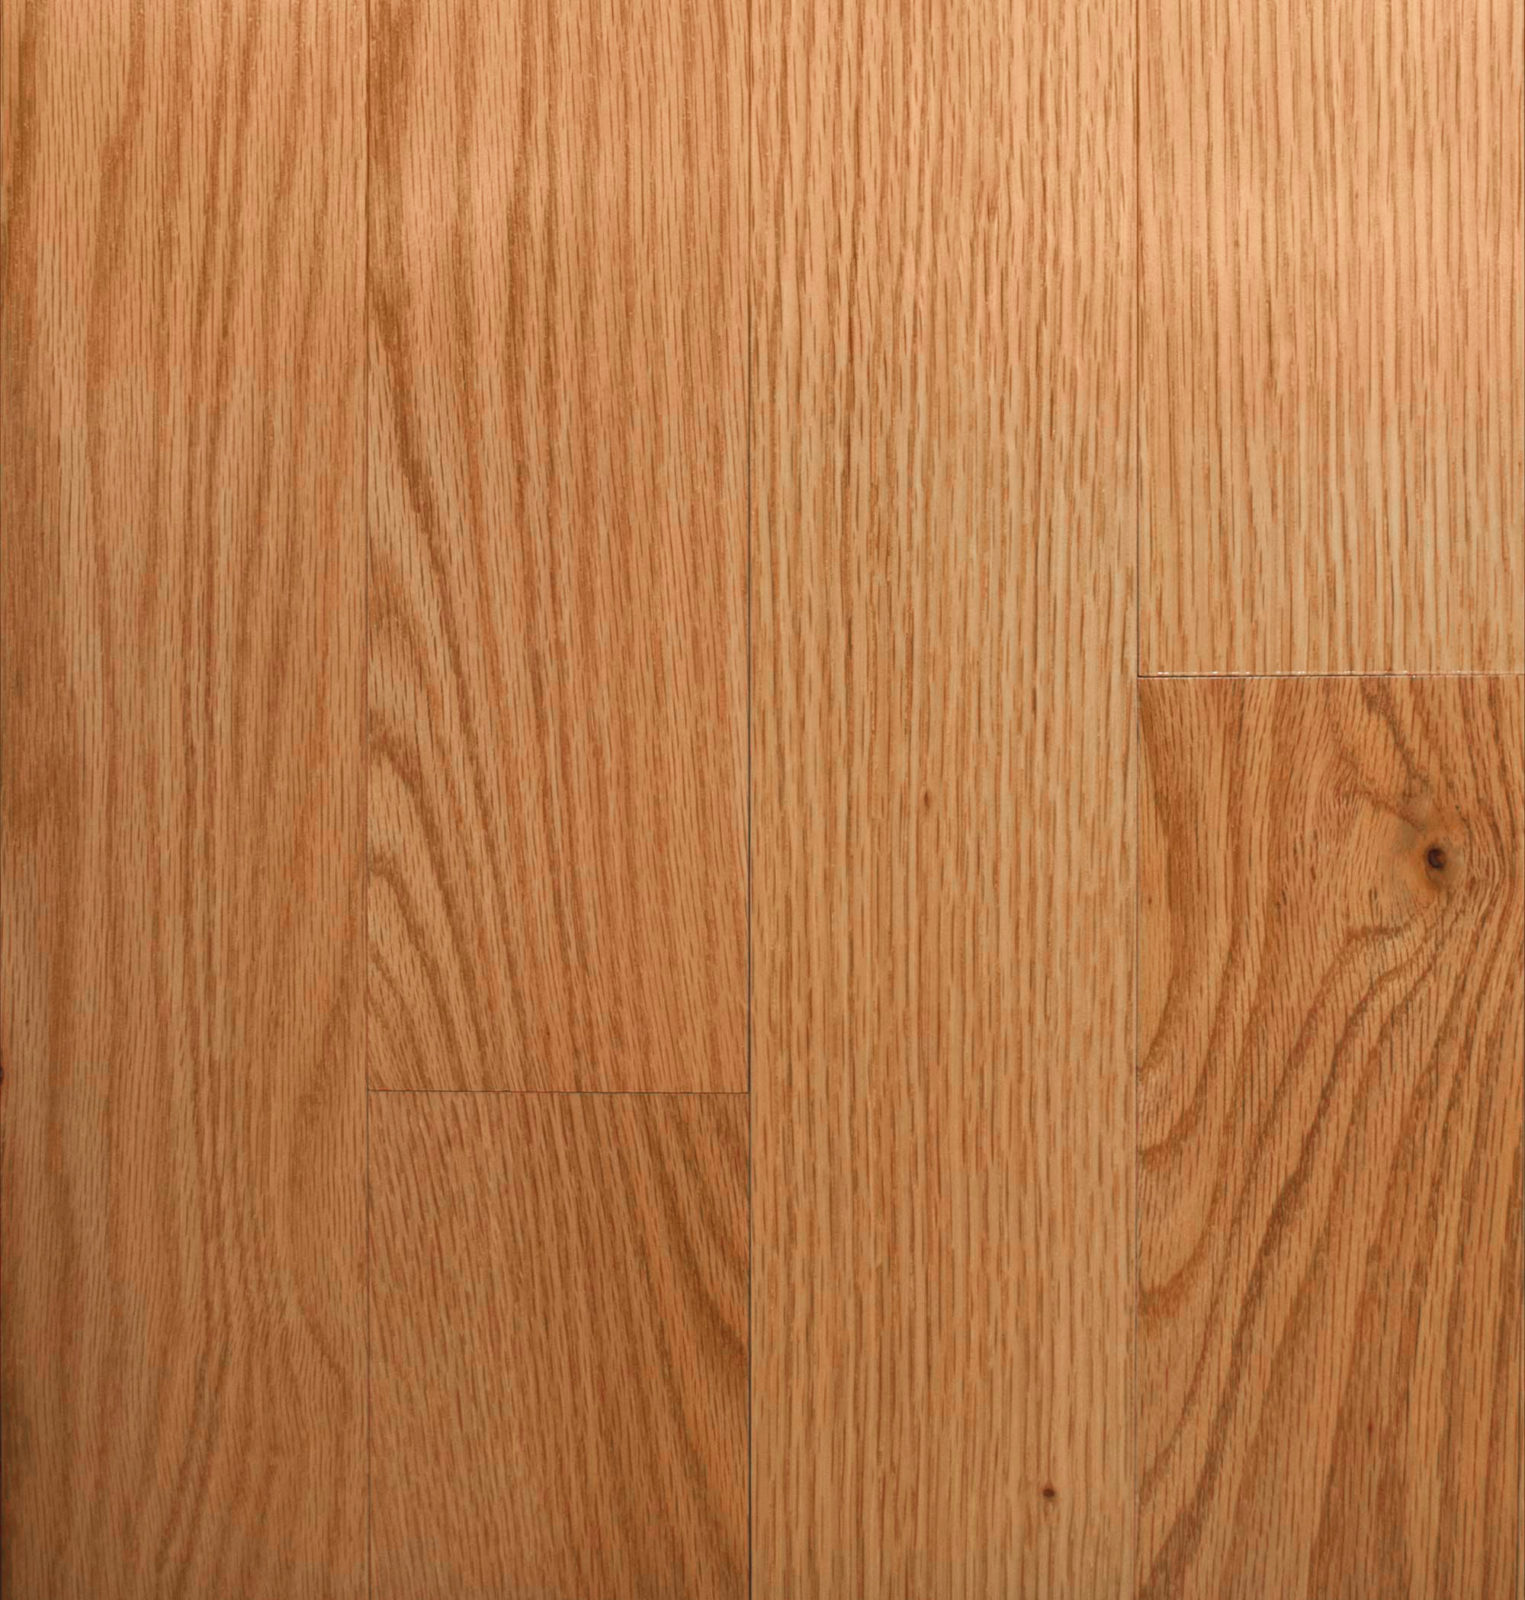 3 1 4 x 3 4 mohawk red oak natural schillings for Natural oak wood flooring